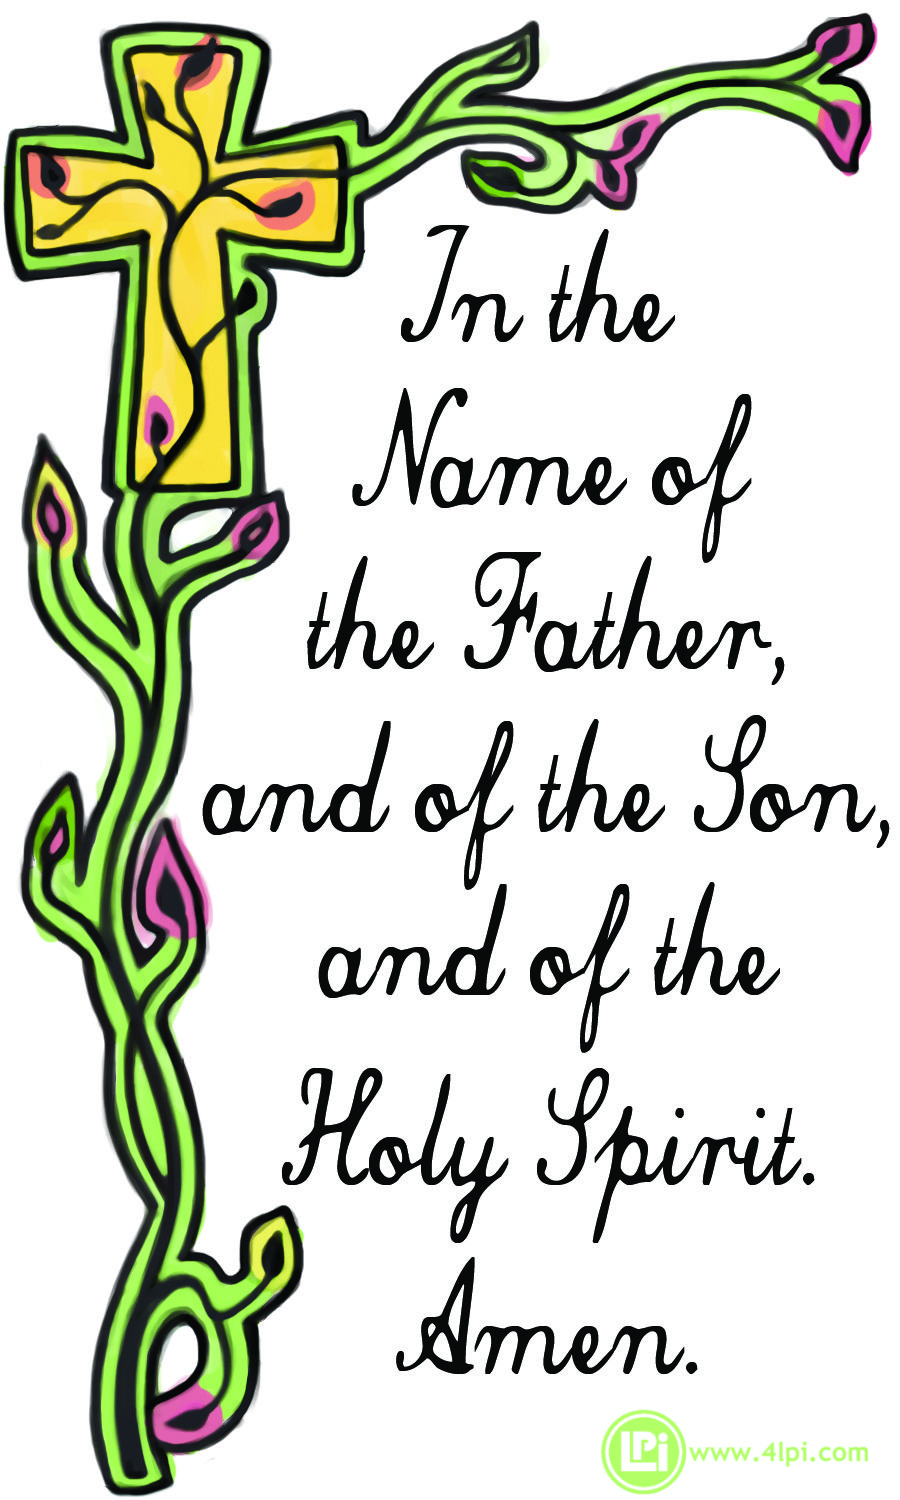 In the Name of the Father, and of the Son, and of the Holy.